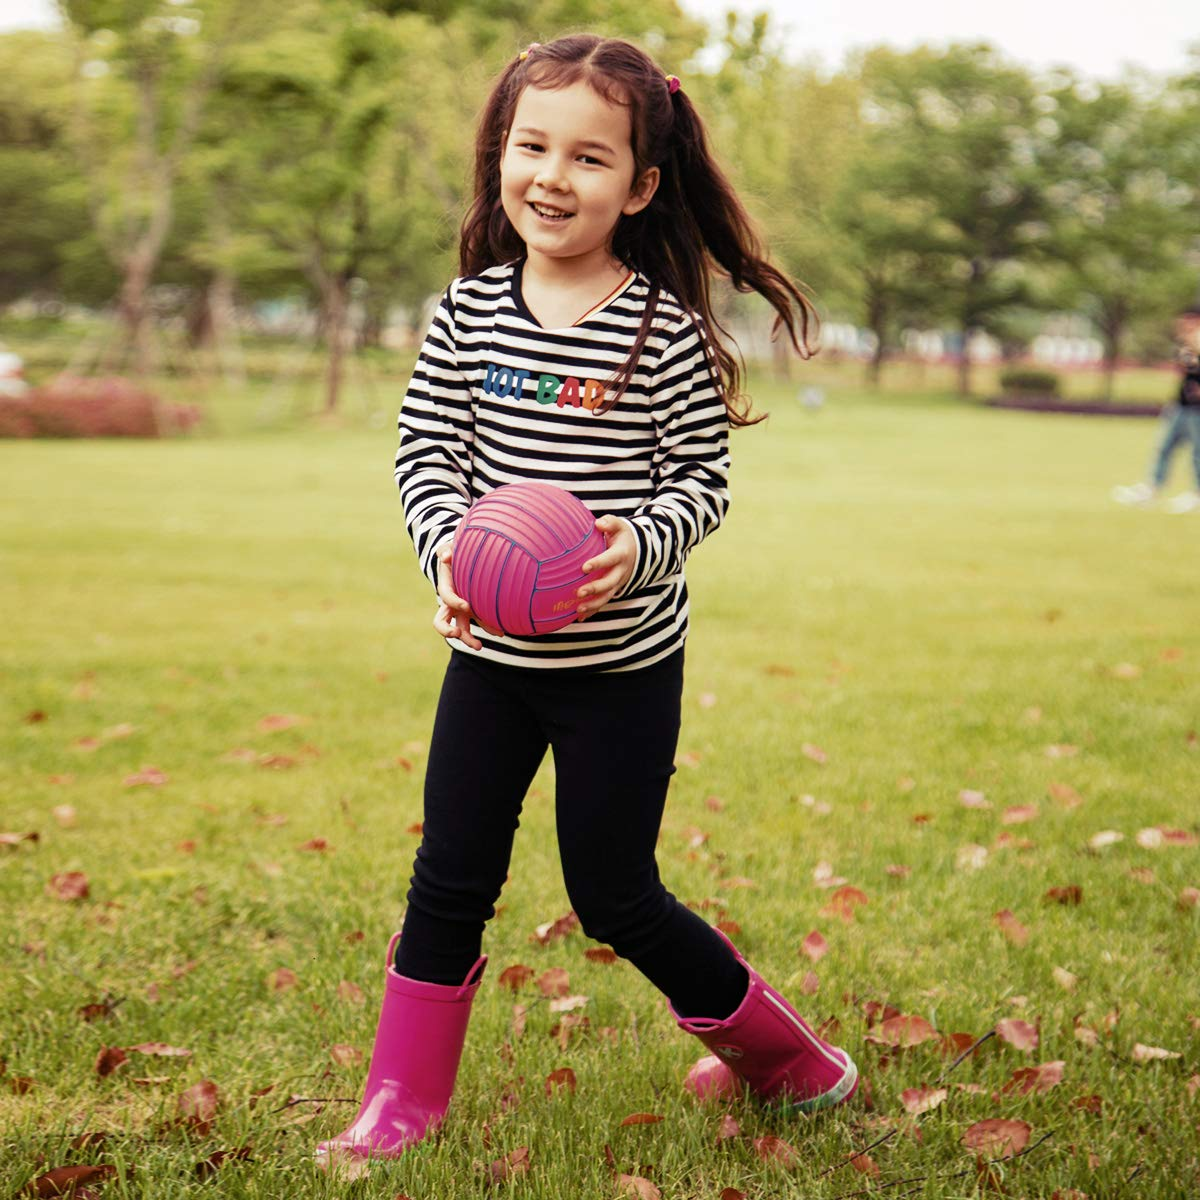 KomForme Kids Rain Boots, Plain Color Girl Rubber Boots Waterproof with Handles Pink by KomForme (Image #5)